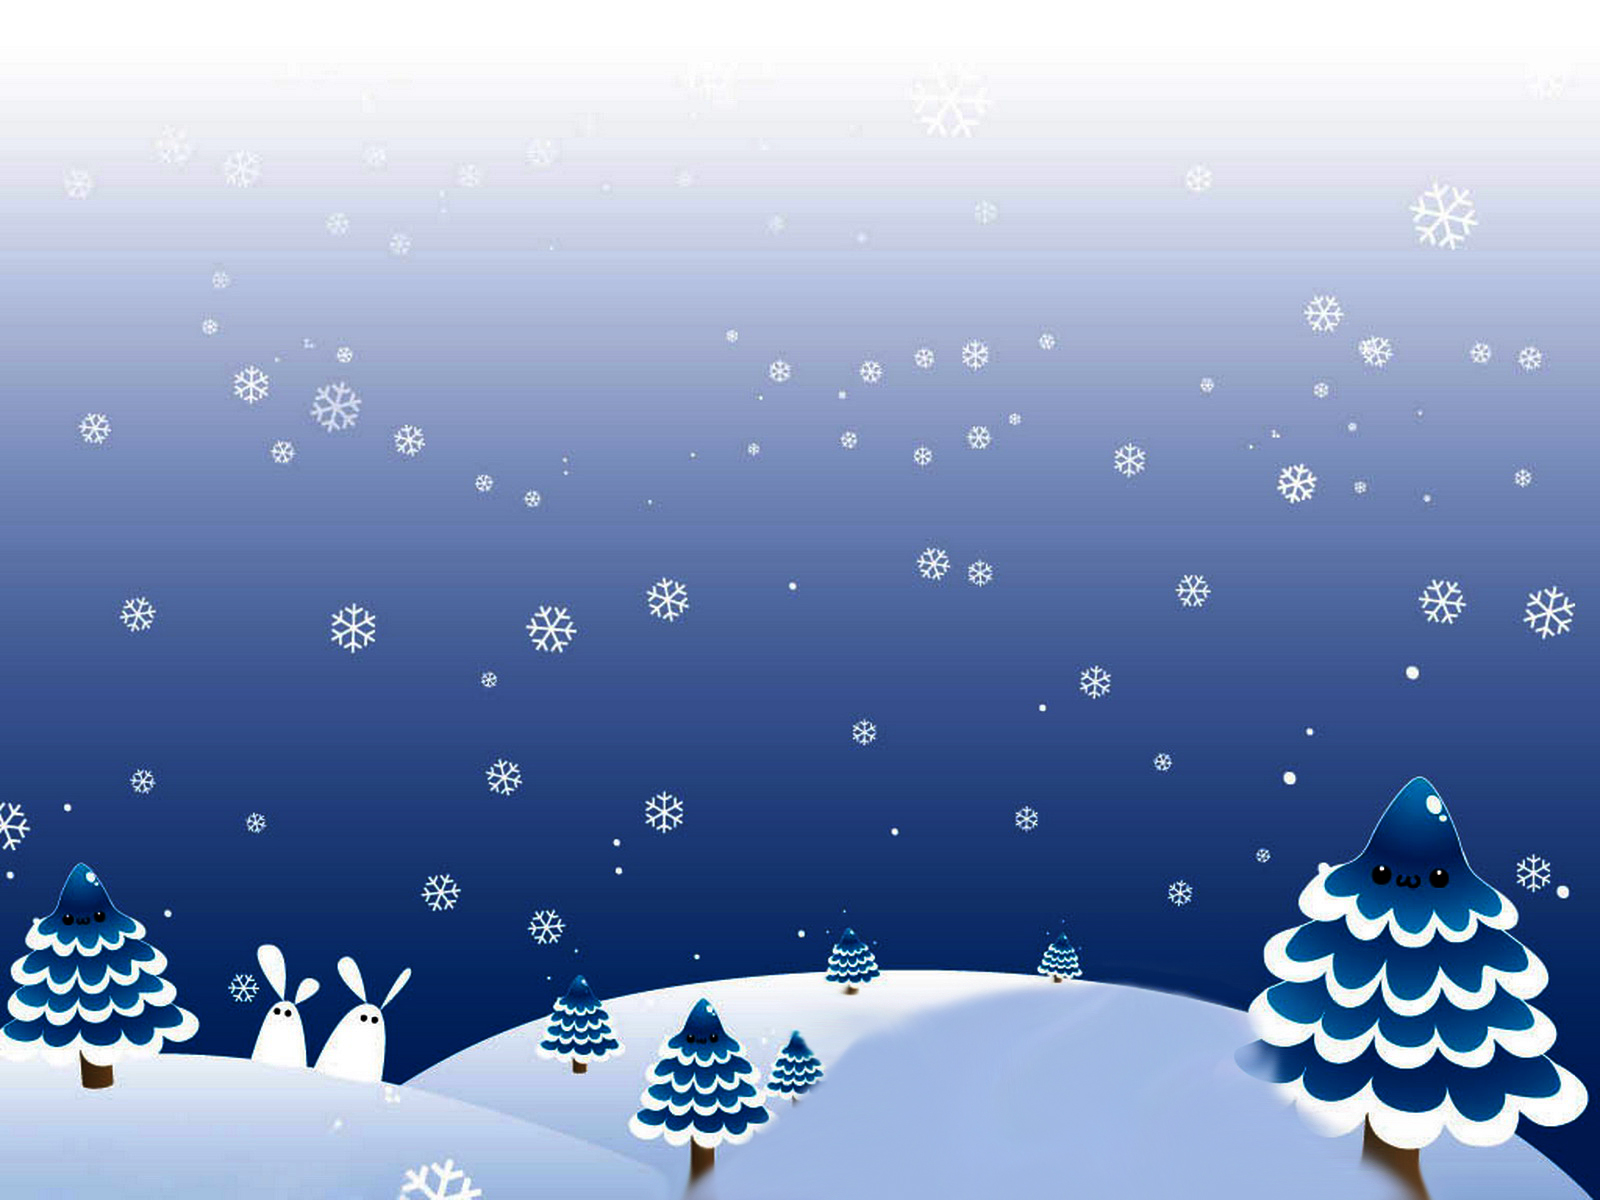 Winter Christmas Day Backgrounds For PowerPoint.